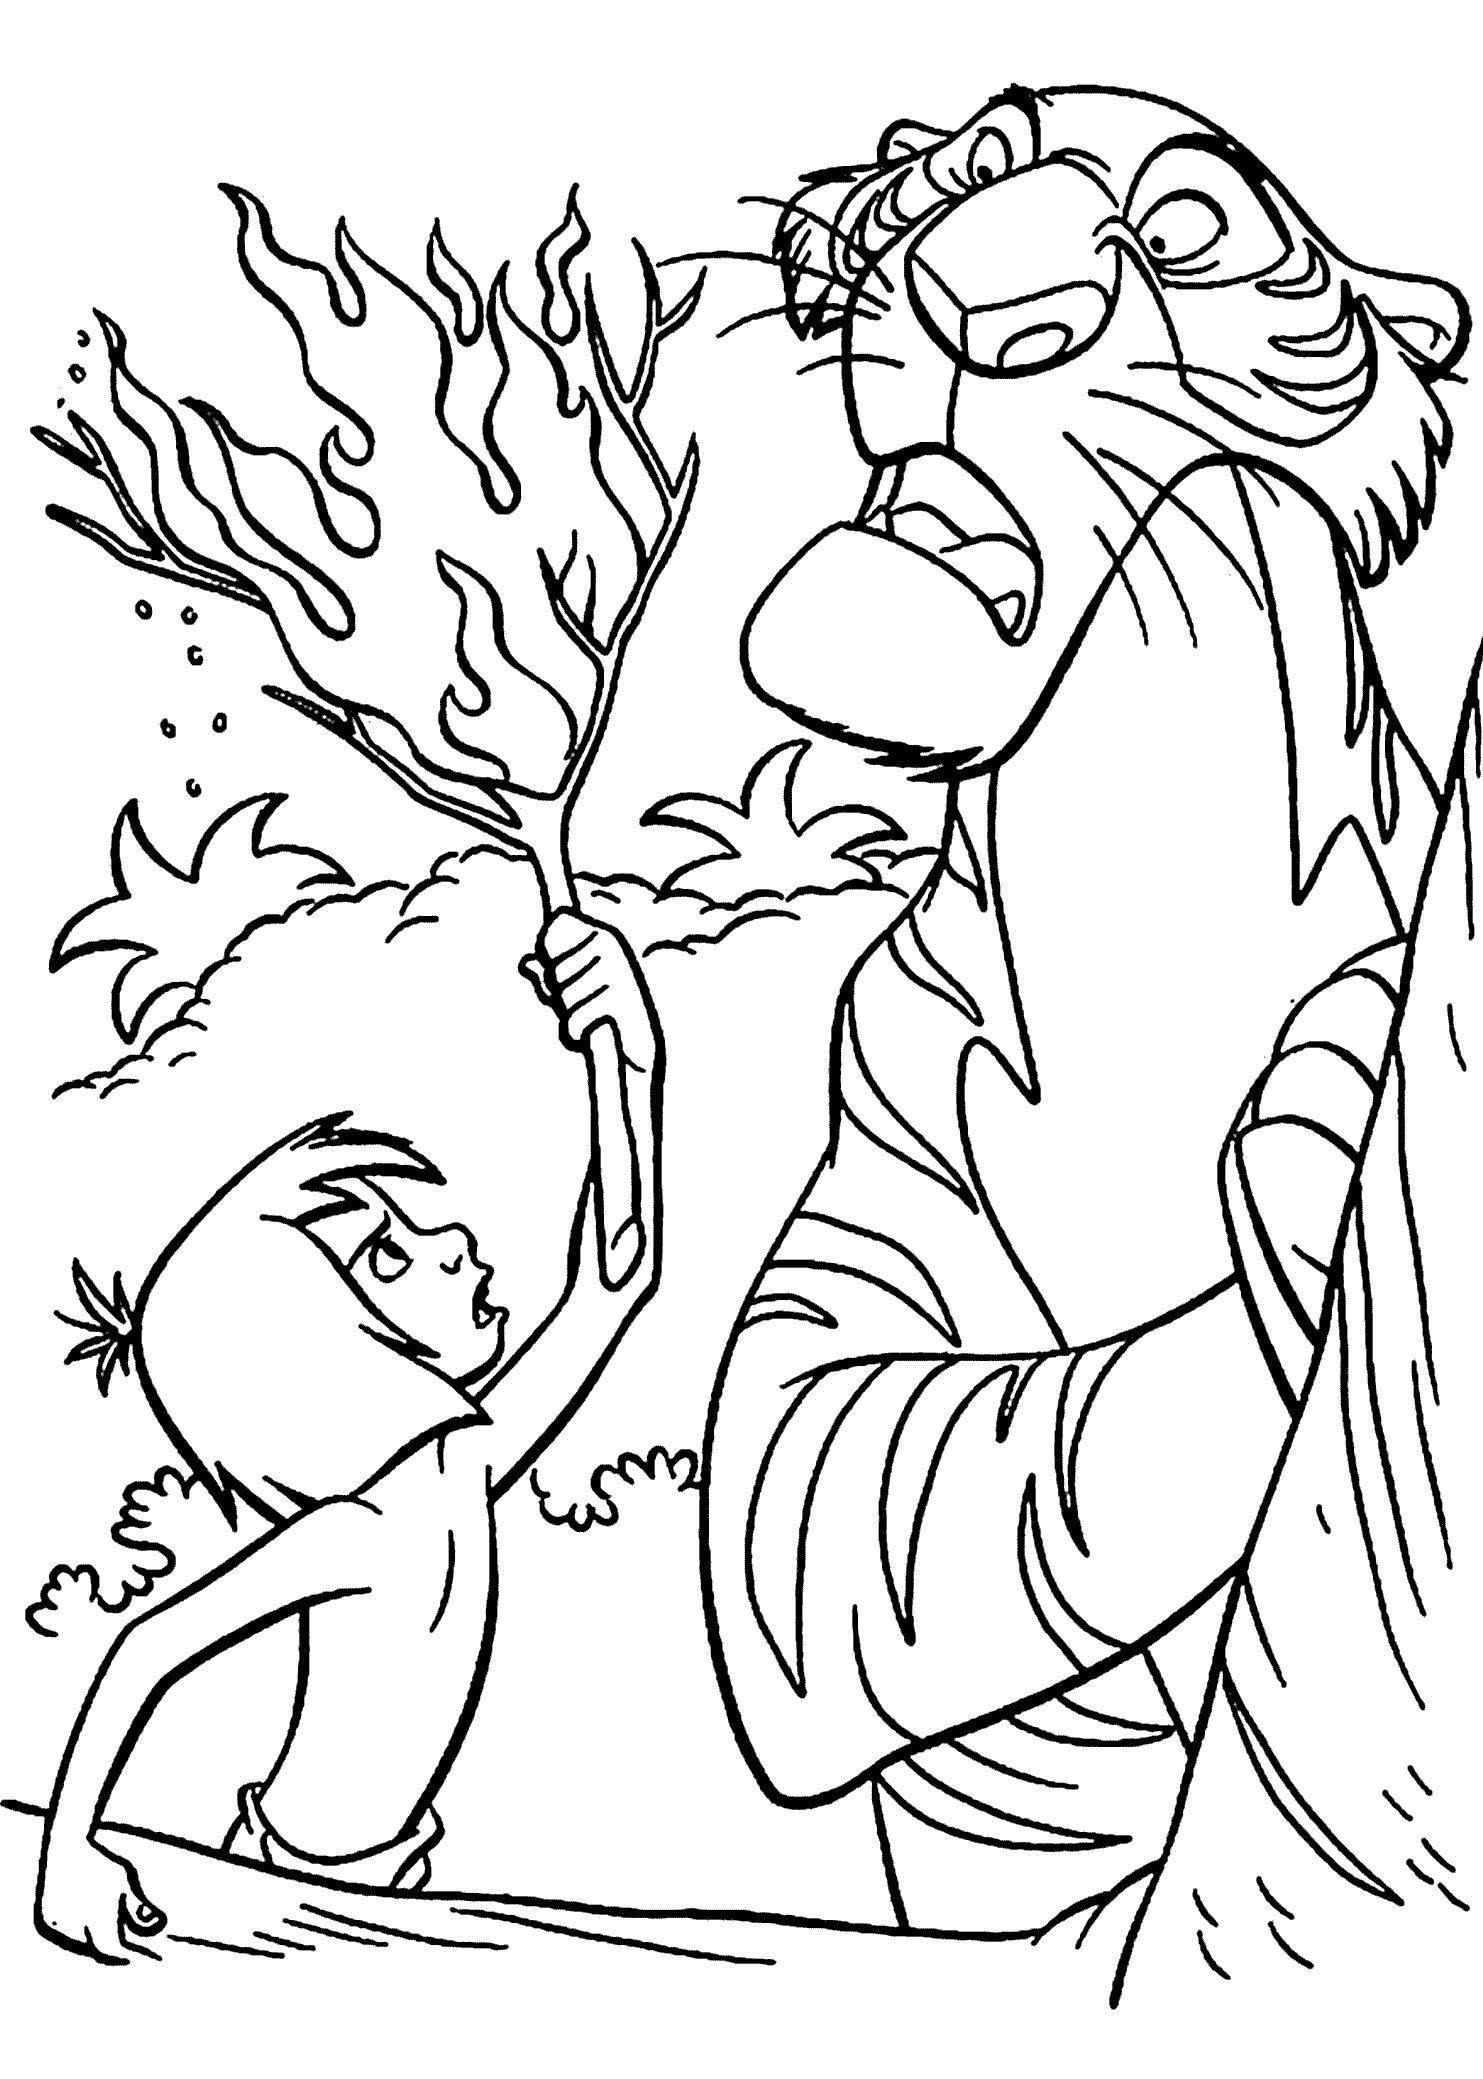 Mowgli And Shir Khan Coloring Page Disney S Jungle Book